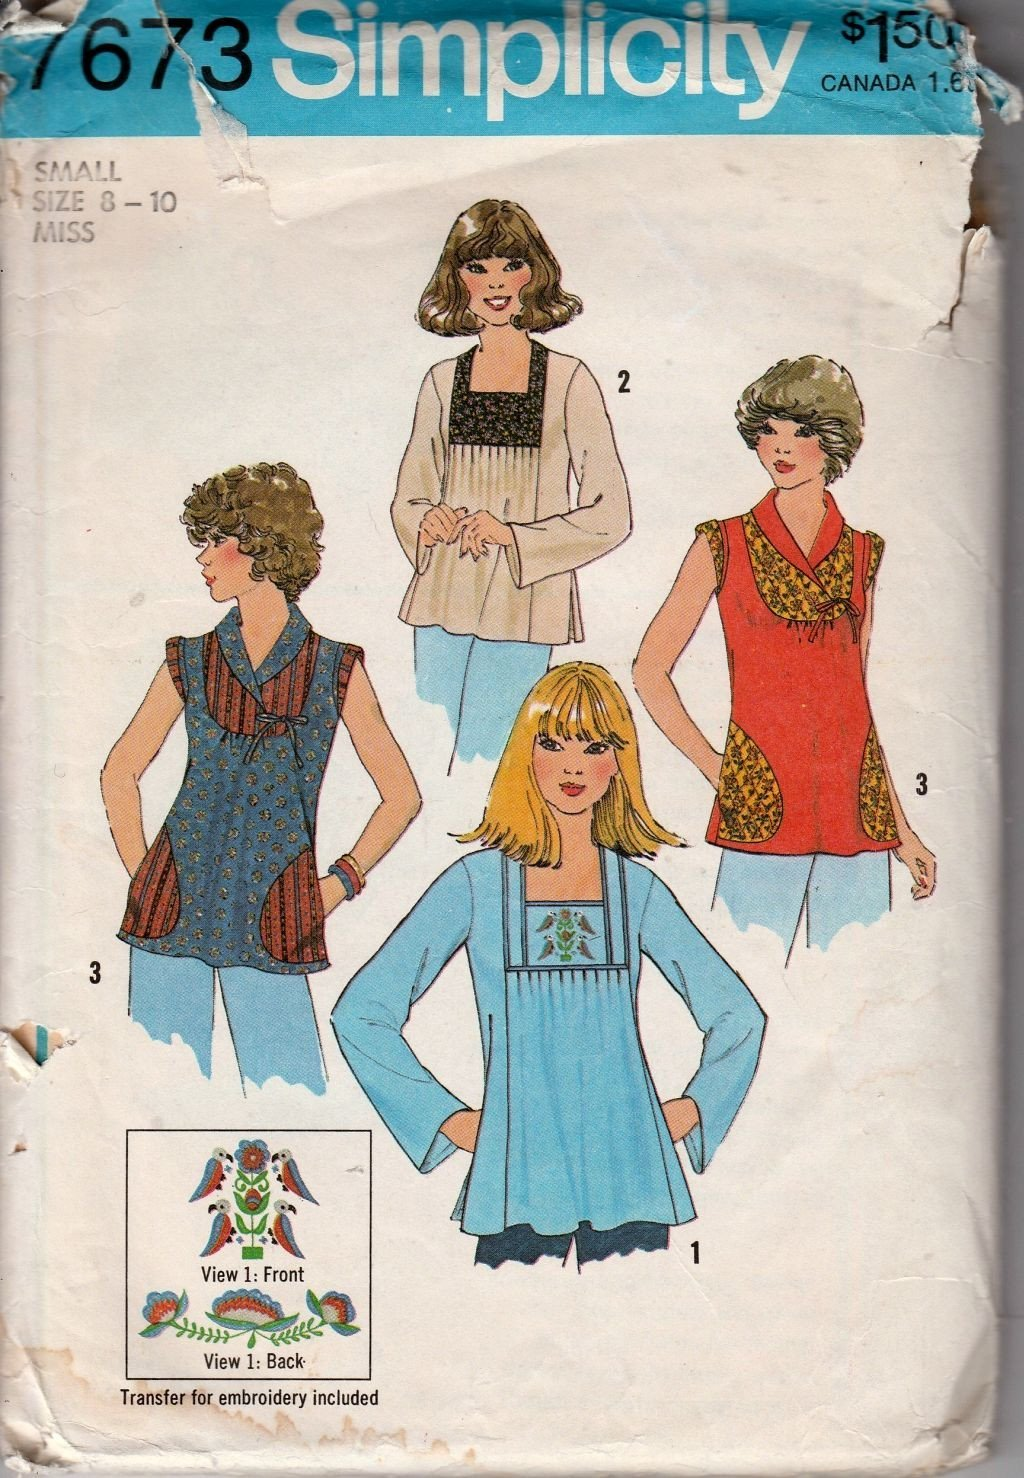 Simplicity 7673 Vintage 1970's Sewing Pattern Ladies Pullover Pleated Top - VintageStitching - Vintage Sewing Patterns